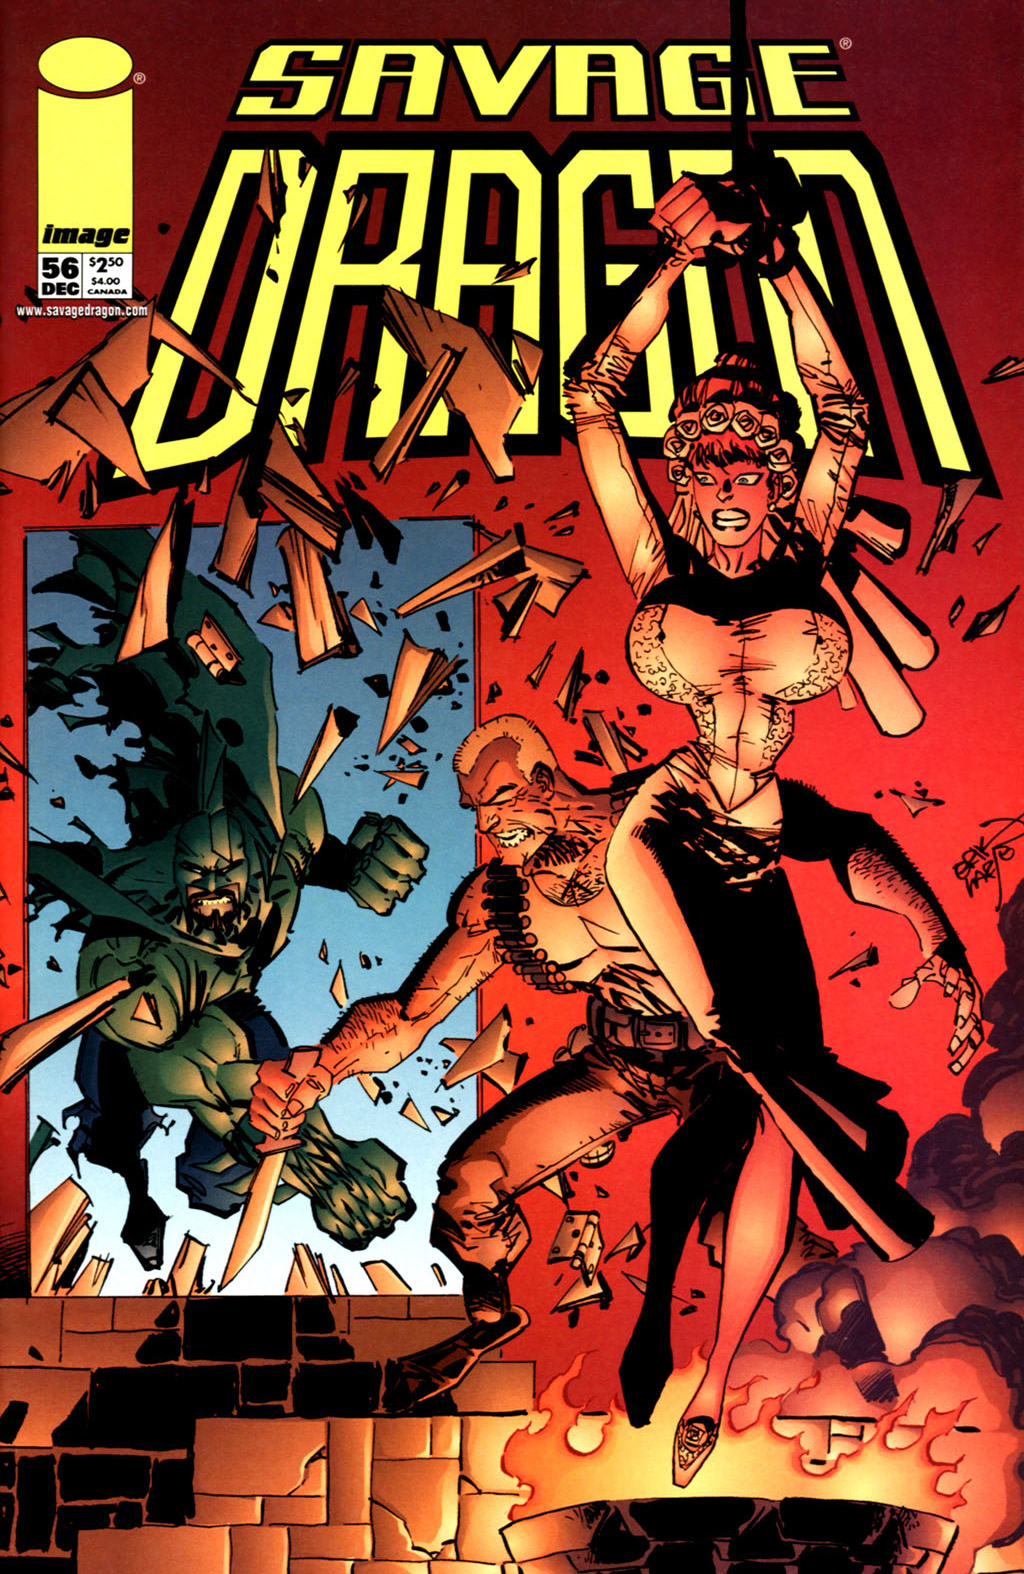 Cover Savage Dragon Vol.2 #56